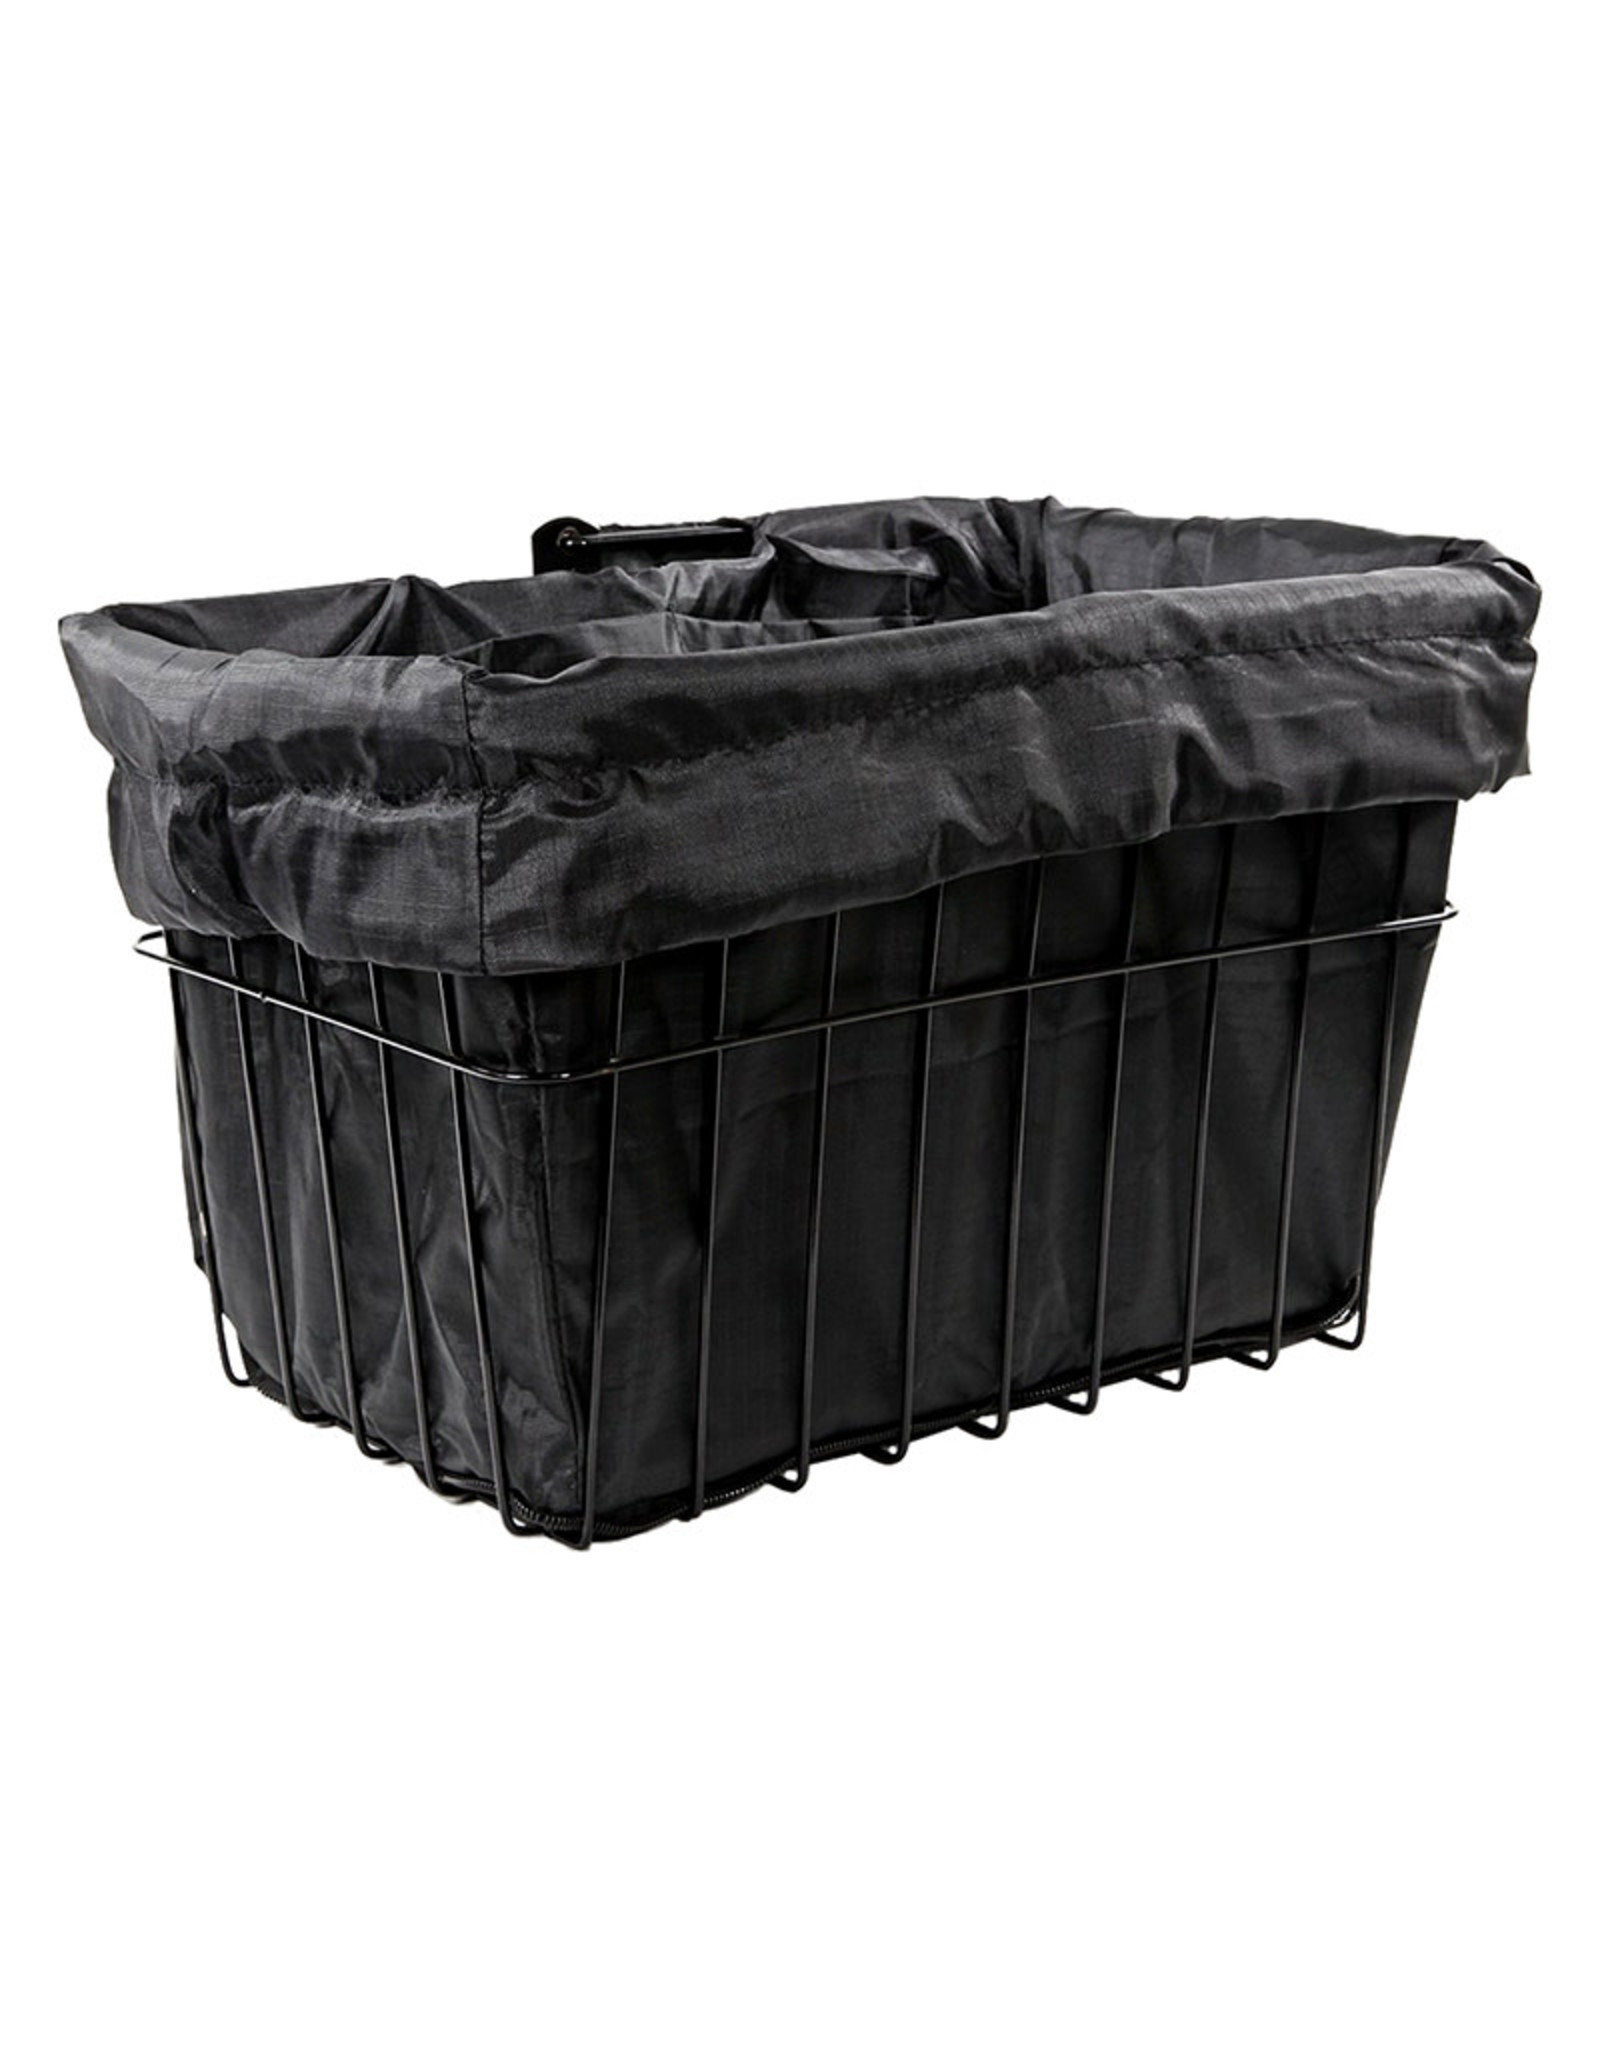 Cruiser Candy Accessory, Basket Liner - Cruiser Candy, Reversible, Black